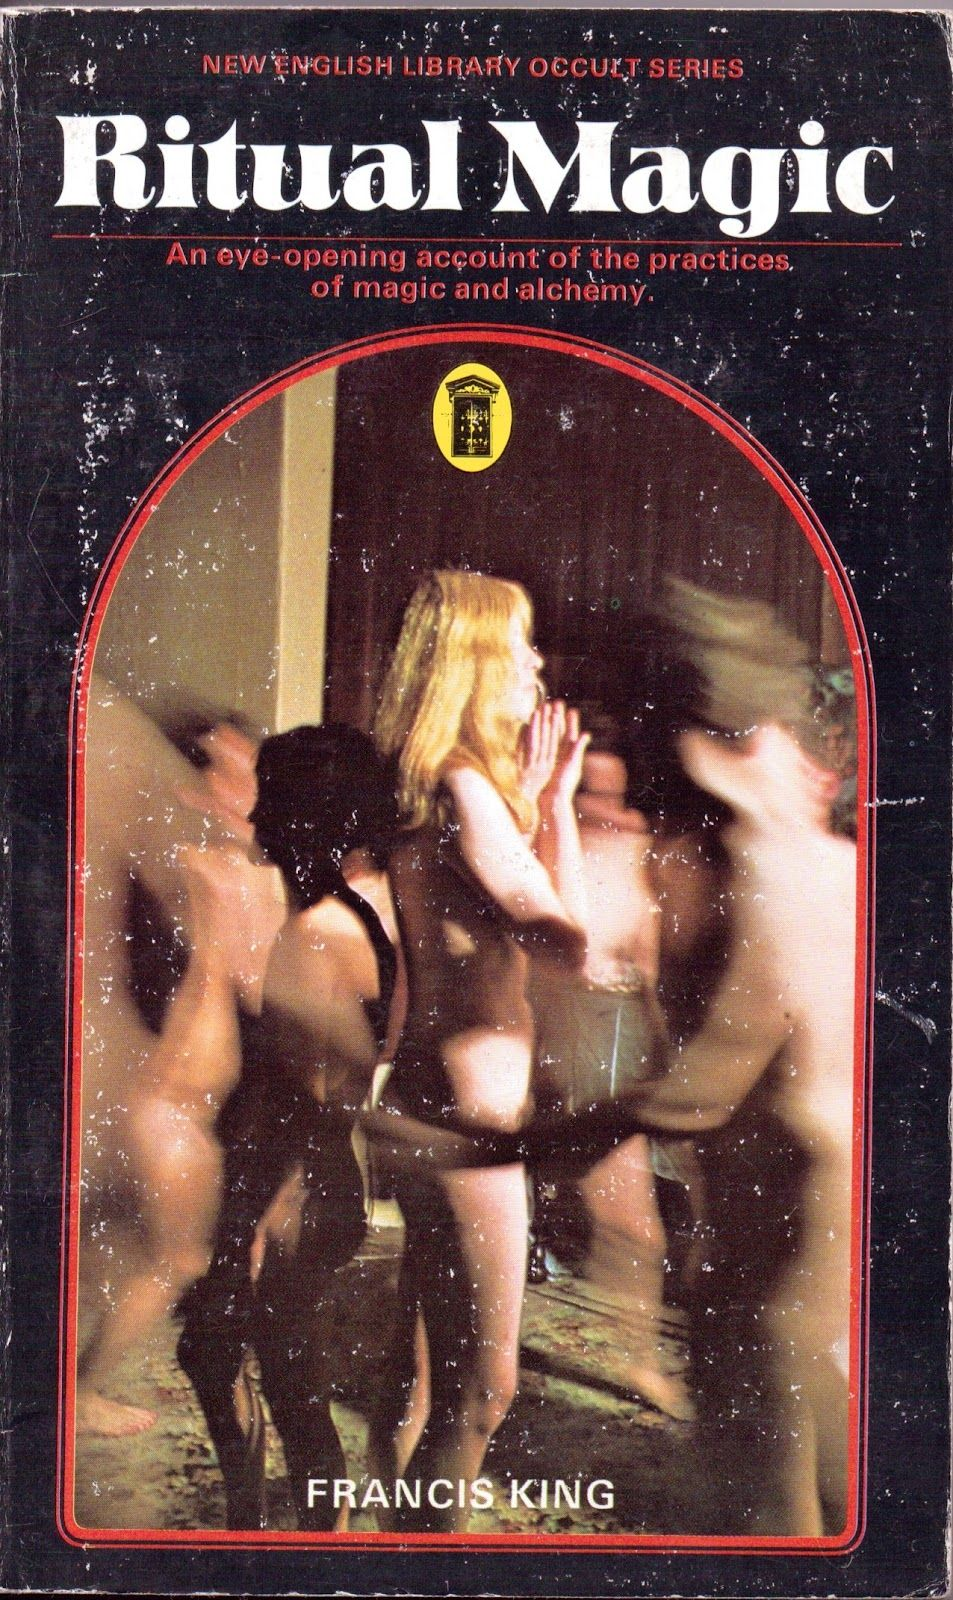 One hot Erotic stories occult